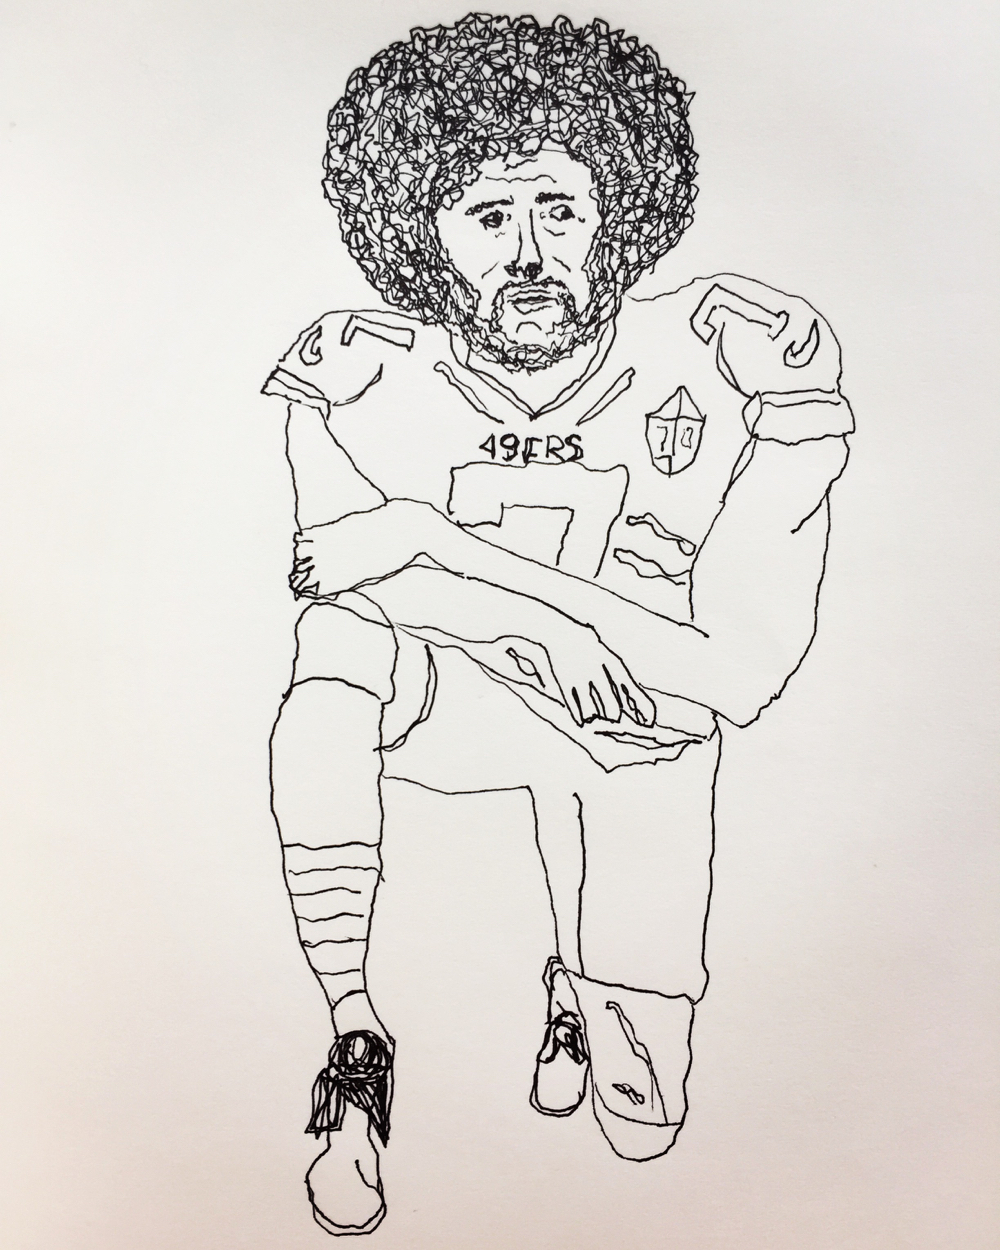 lefthanded drawing, Kaepernick